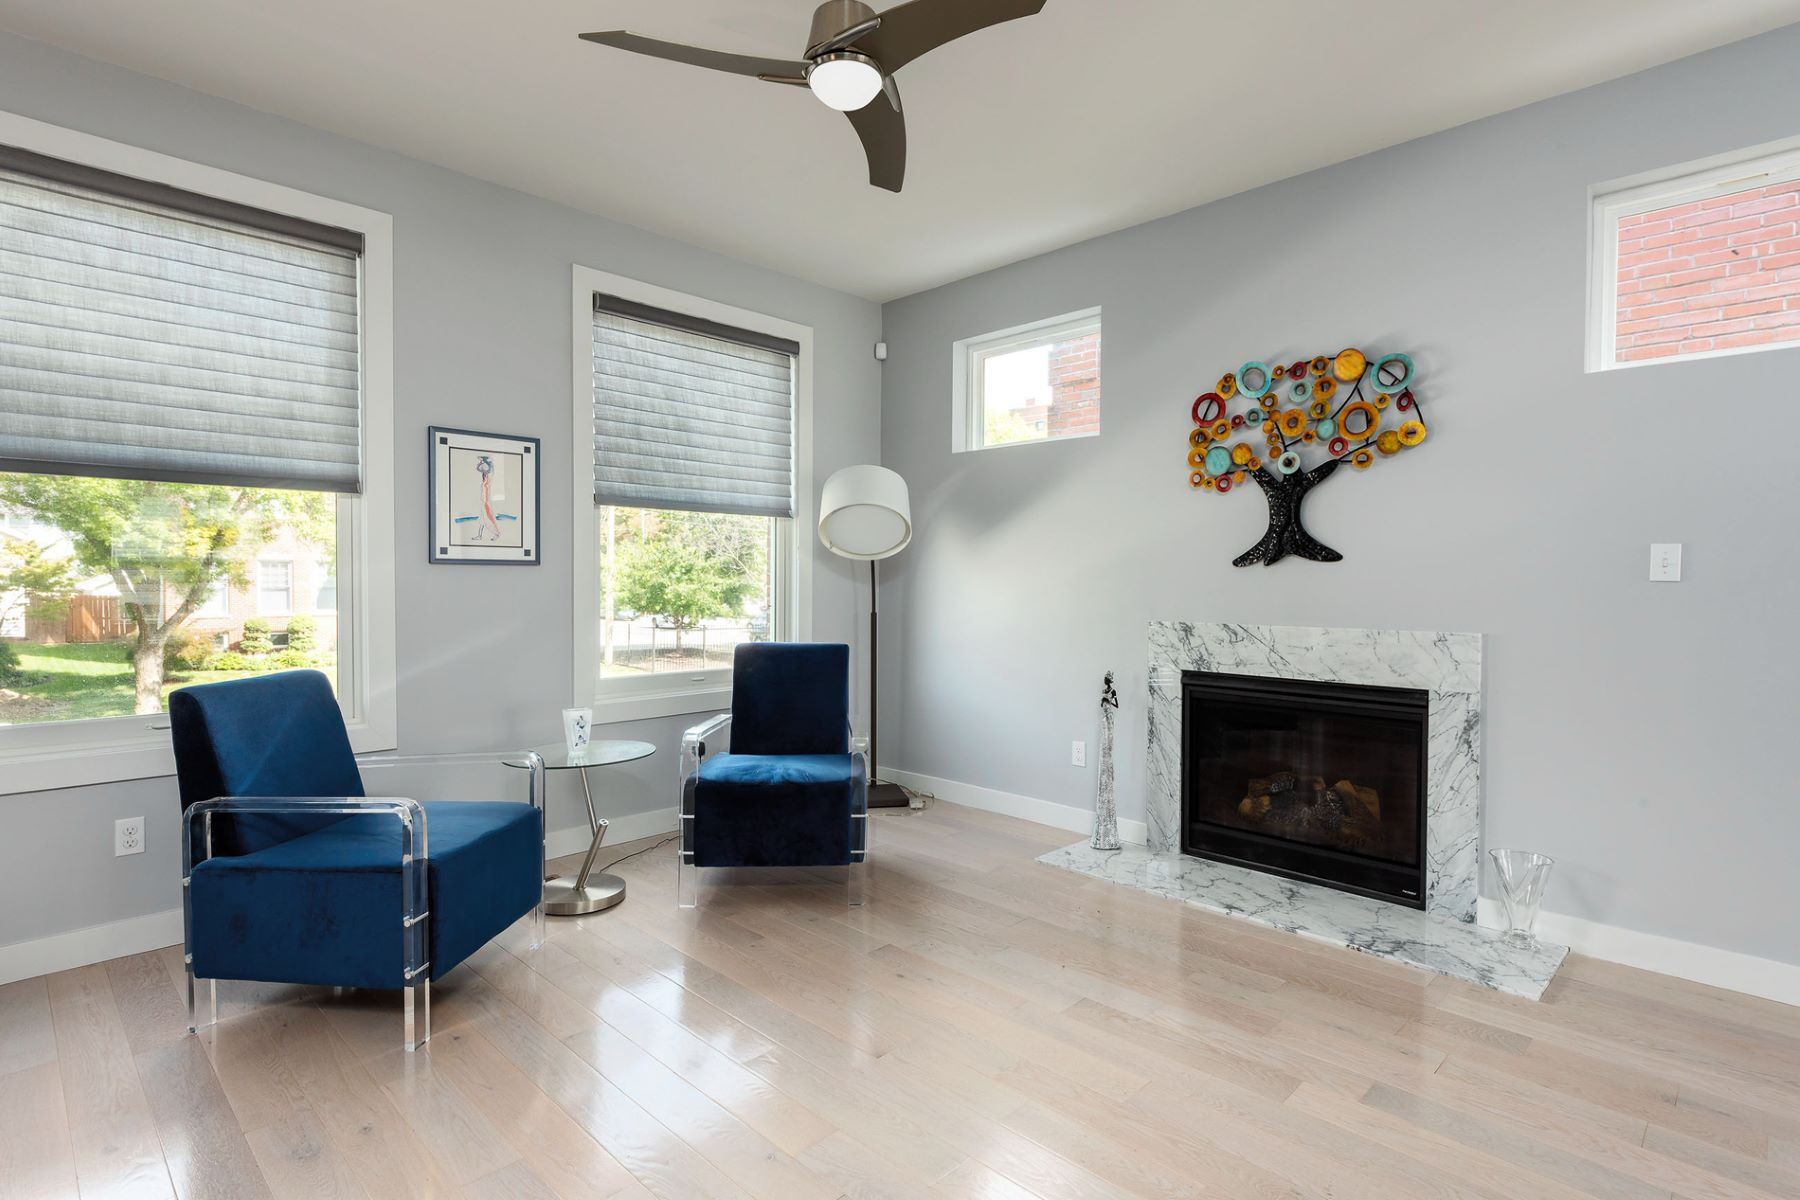 Additional photo for property listing at Mcpherson Ave 5732 McPherson Ave St. Louis, Missouri 63105 United States